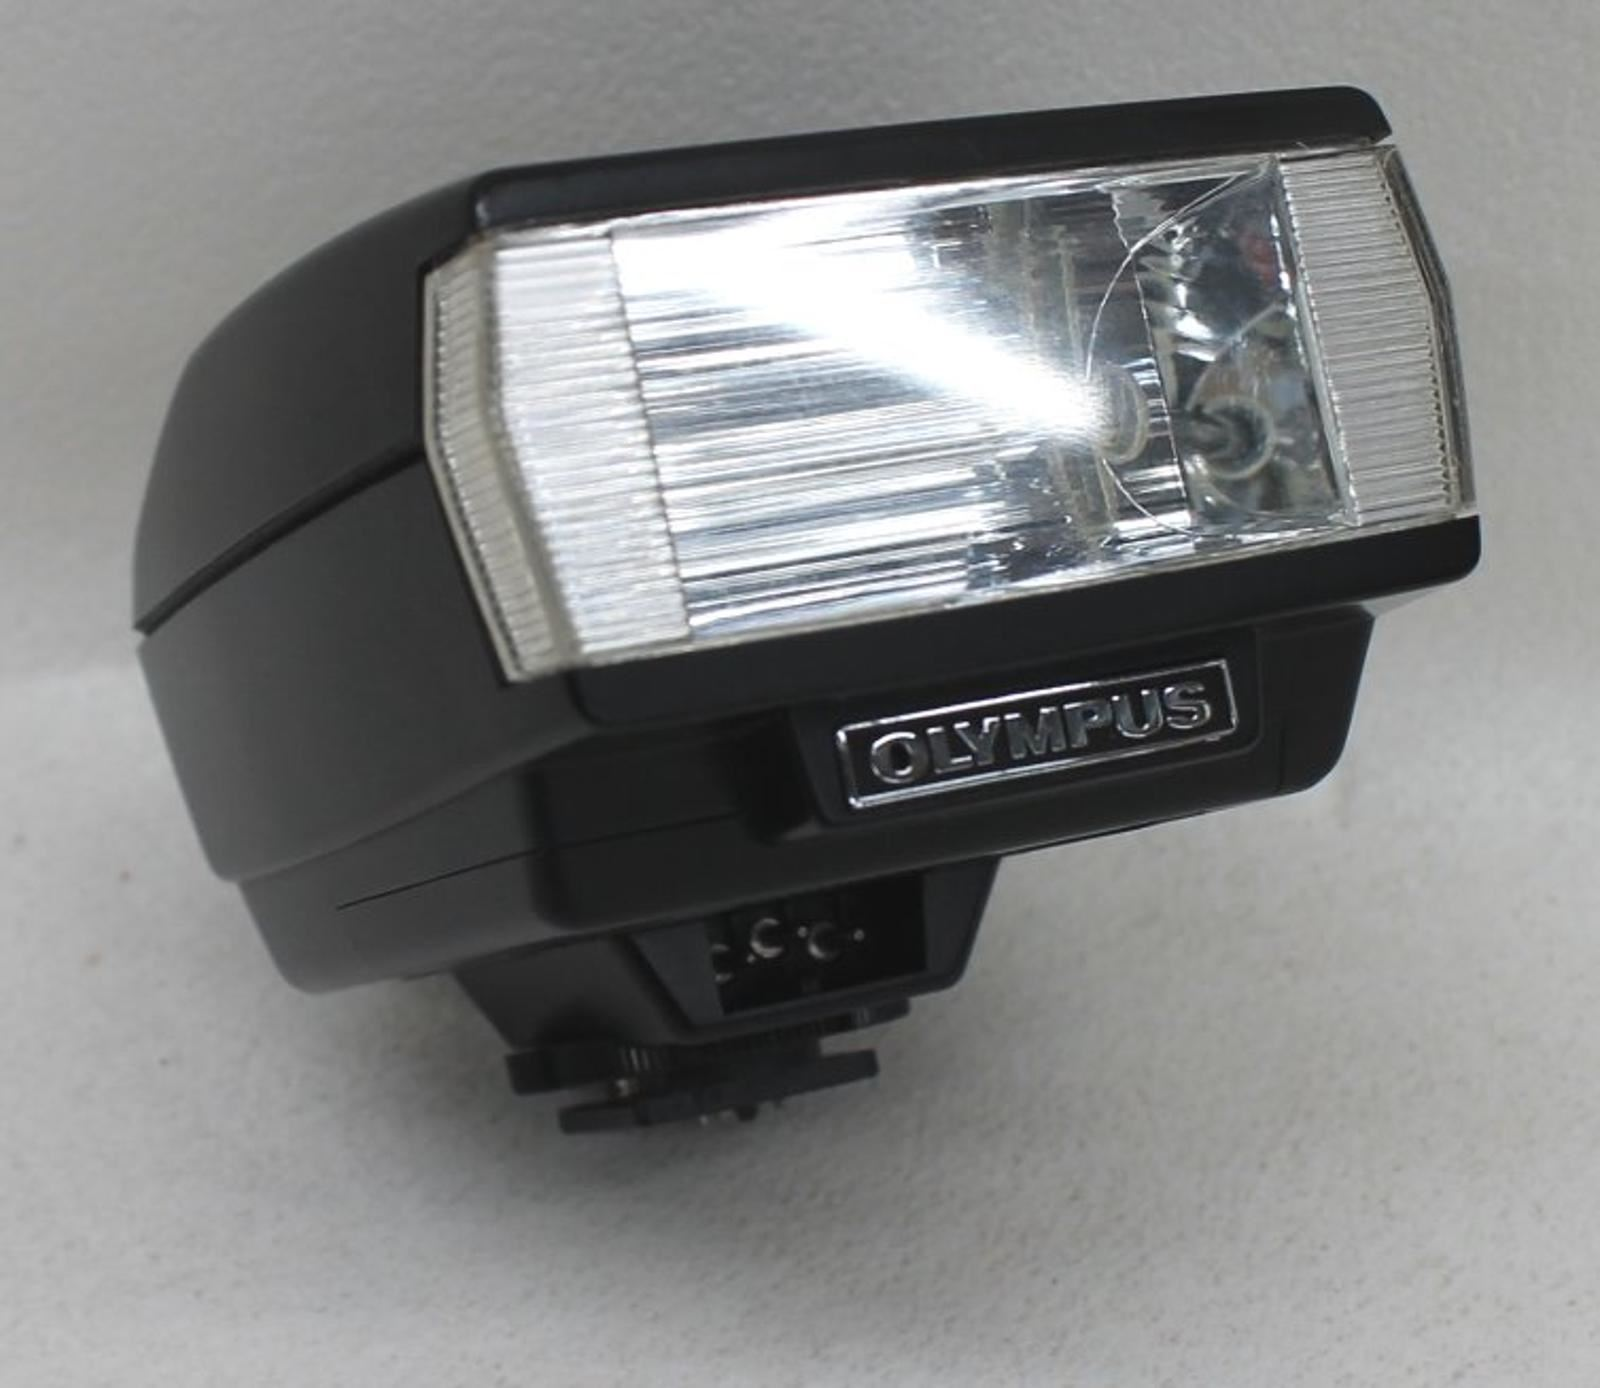 OLYMPUS-T20-Electronic-Shoe-Mount-Flash-Unit-For-OM-SLR-Series-Film-Cameras